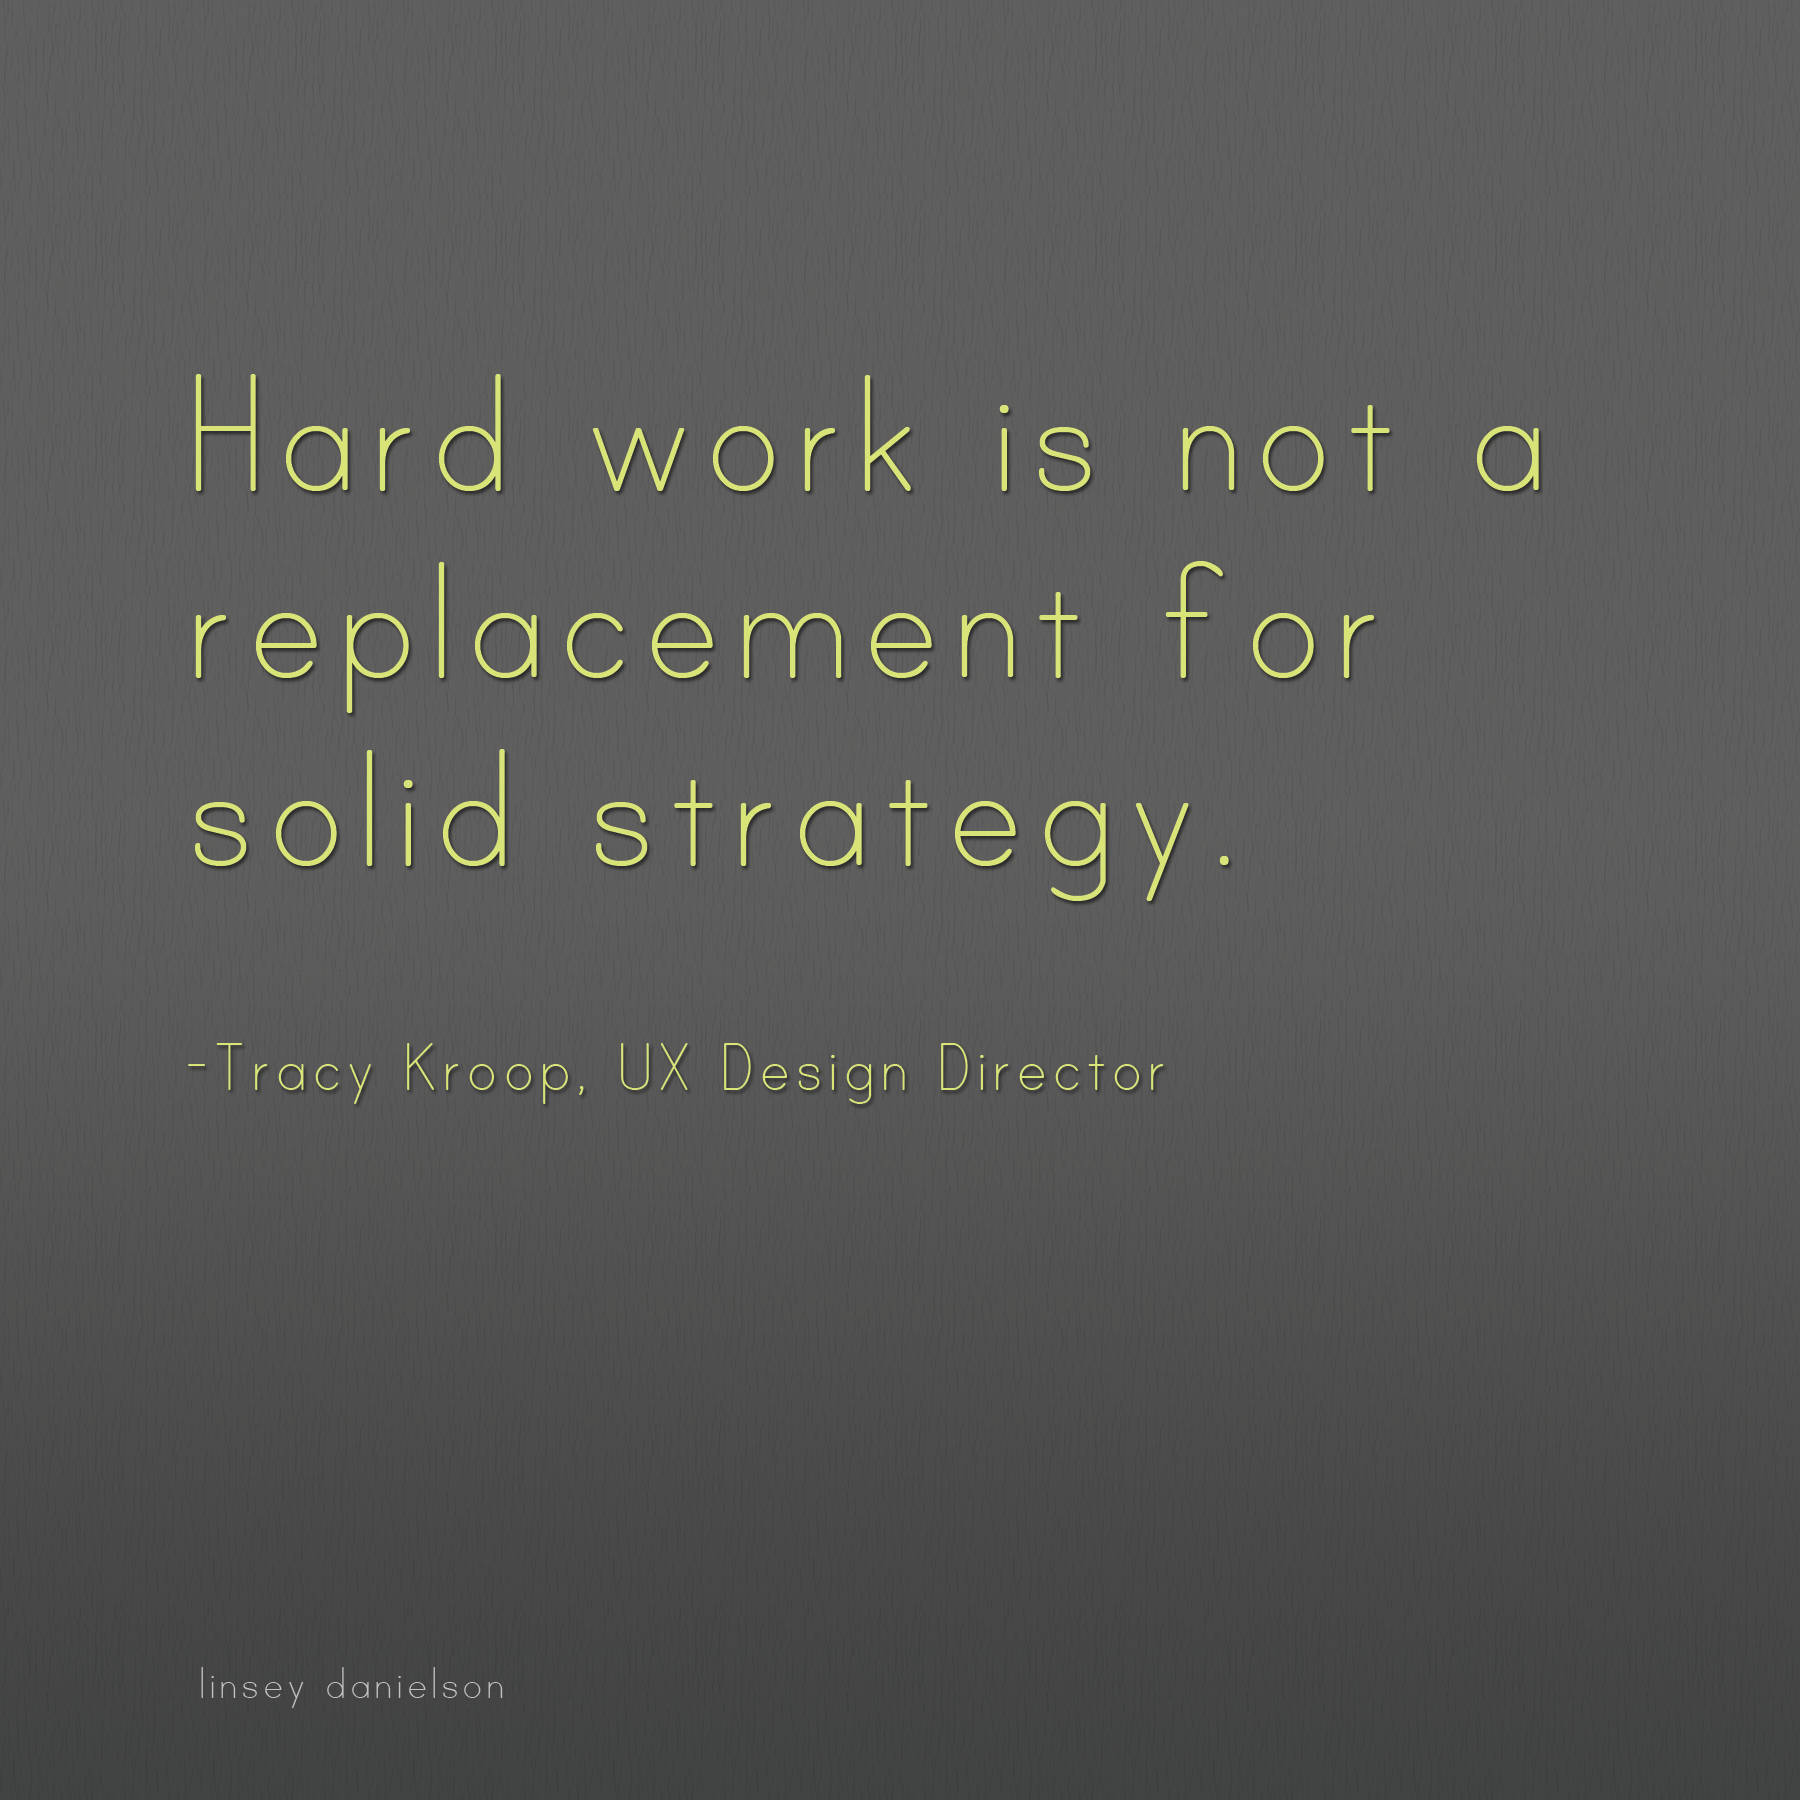 Excellent consulting quote said by a creative genius Tracy Kroop